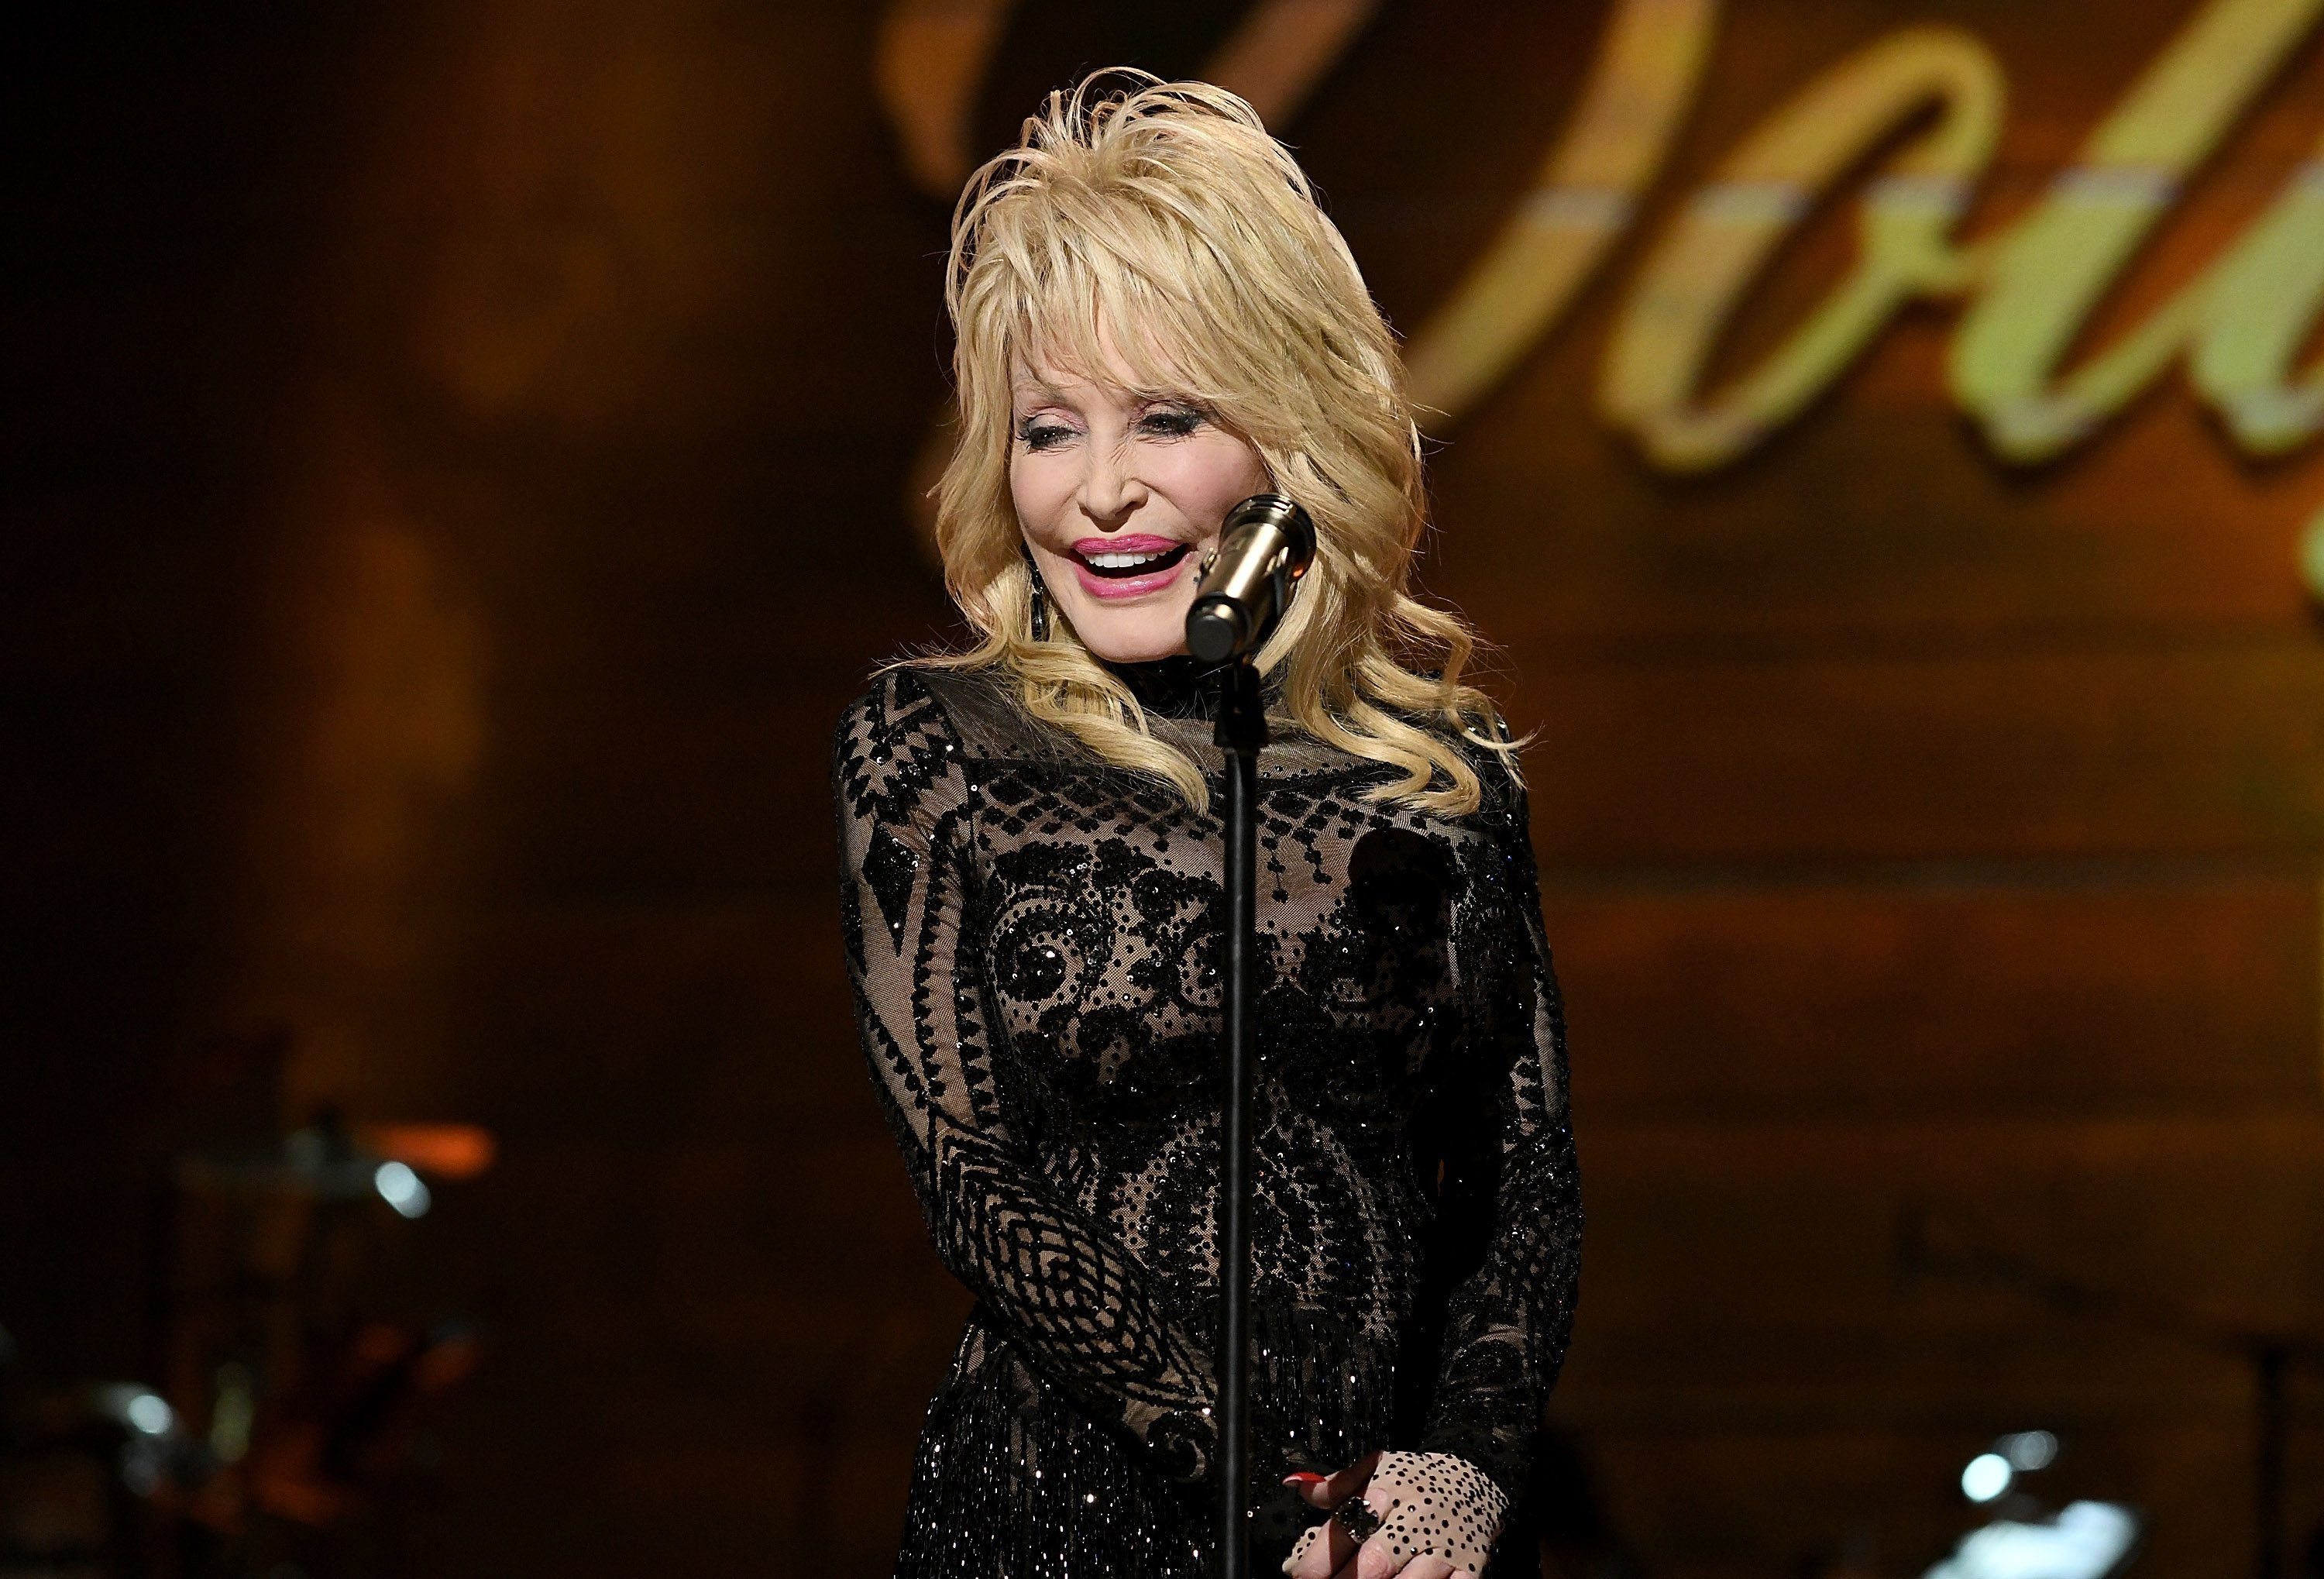 Dolly Parton accepts the 2019 MusiCares Person of the Year Award on February 8, 2019, in Los Angeles, California. | Source: Getty Images.